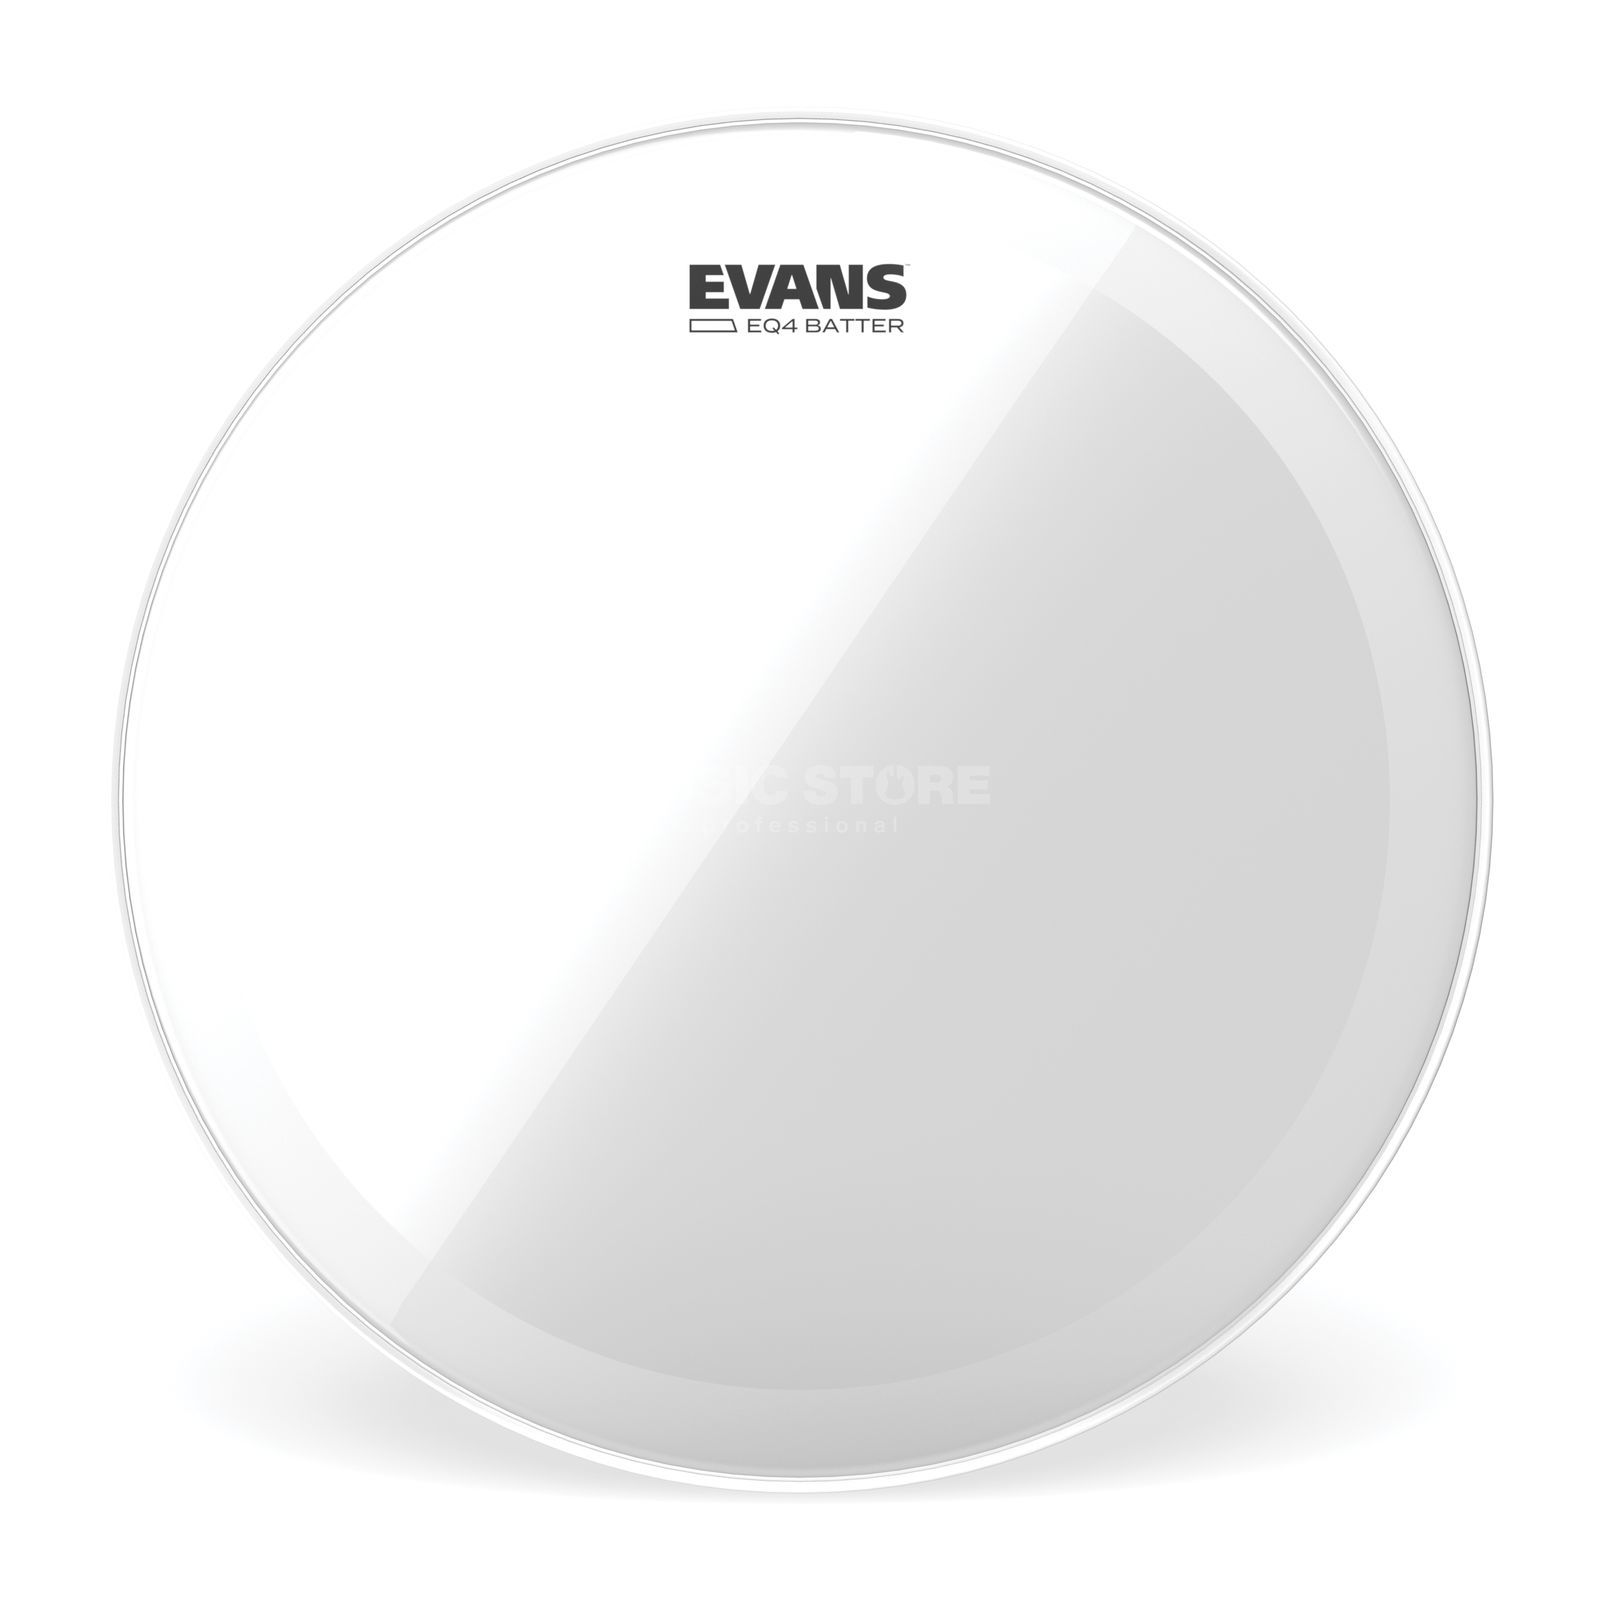 "Evans EQ4 Clear 16"", TT16GB4, BassDrum Batter, Tom Hoop Produktbild"